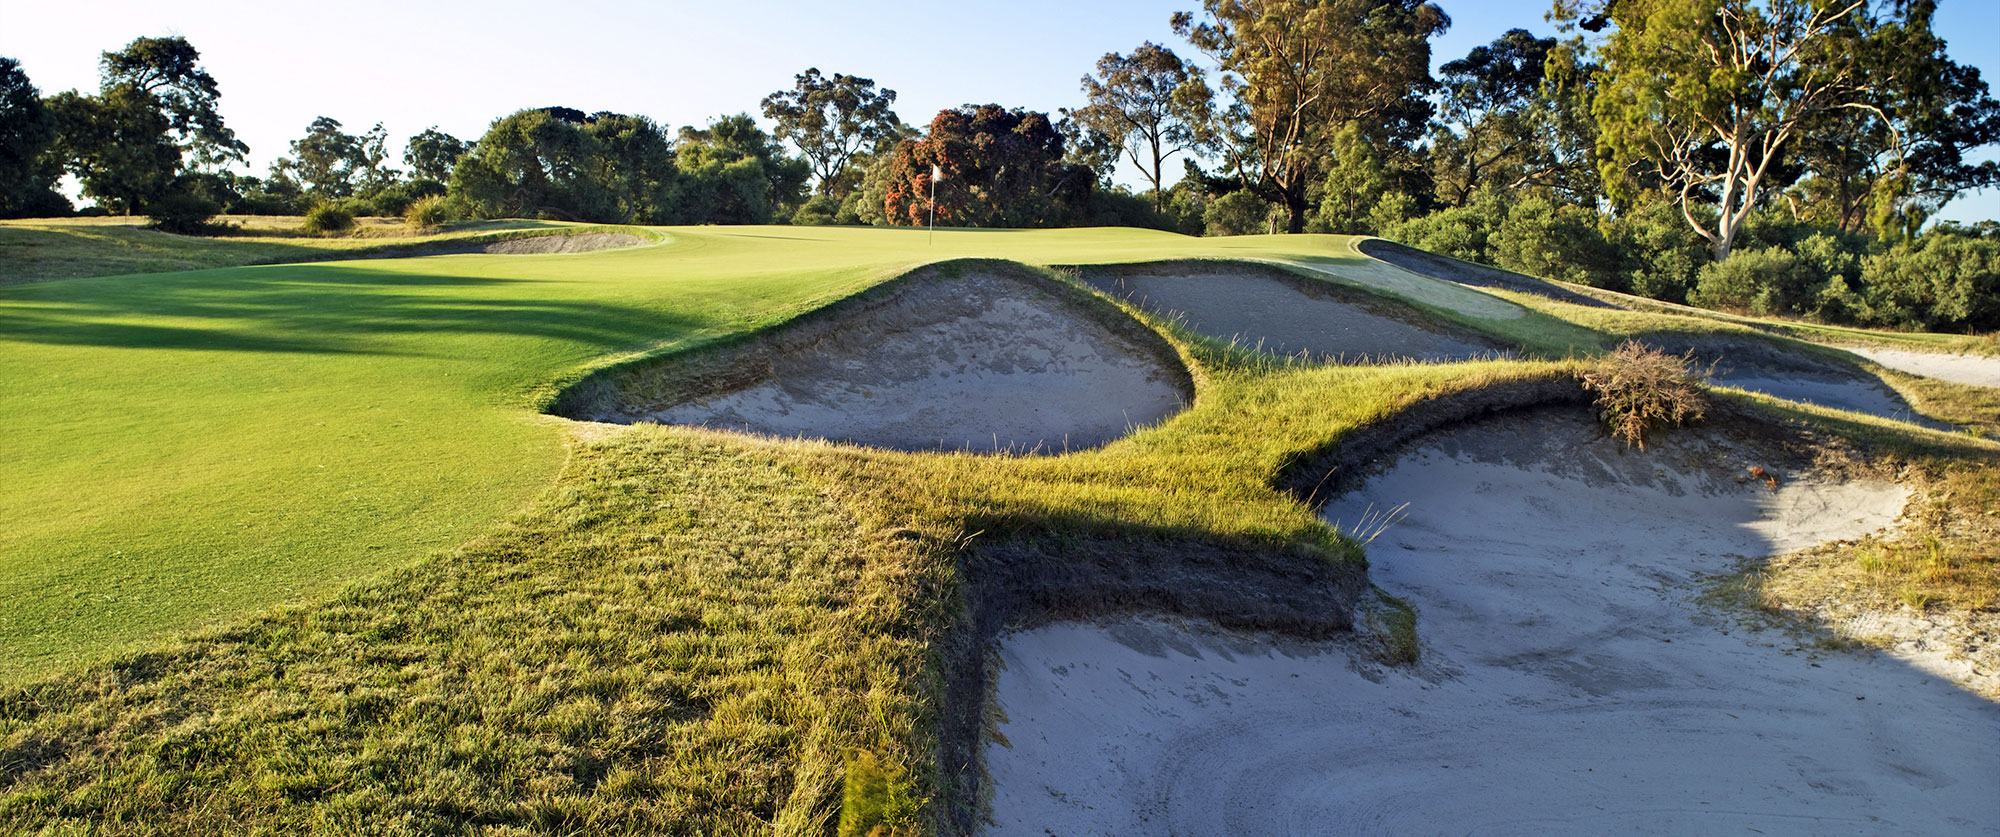 Australia Golf Vacations: Best Australian Golf Courses - Kingston Heath Melbourne